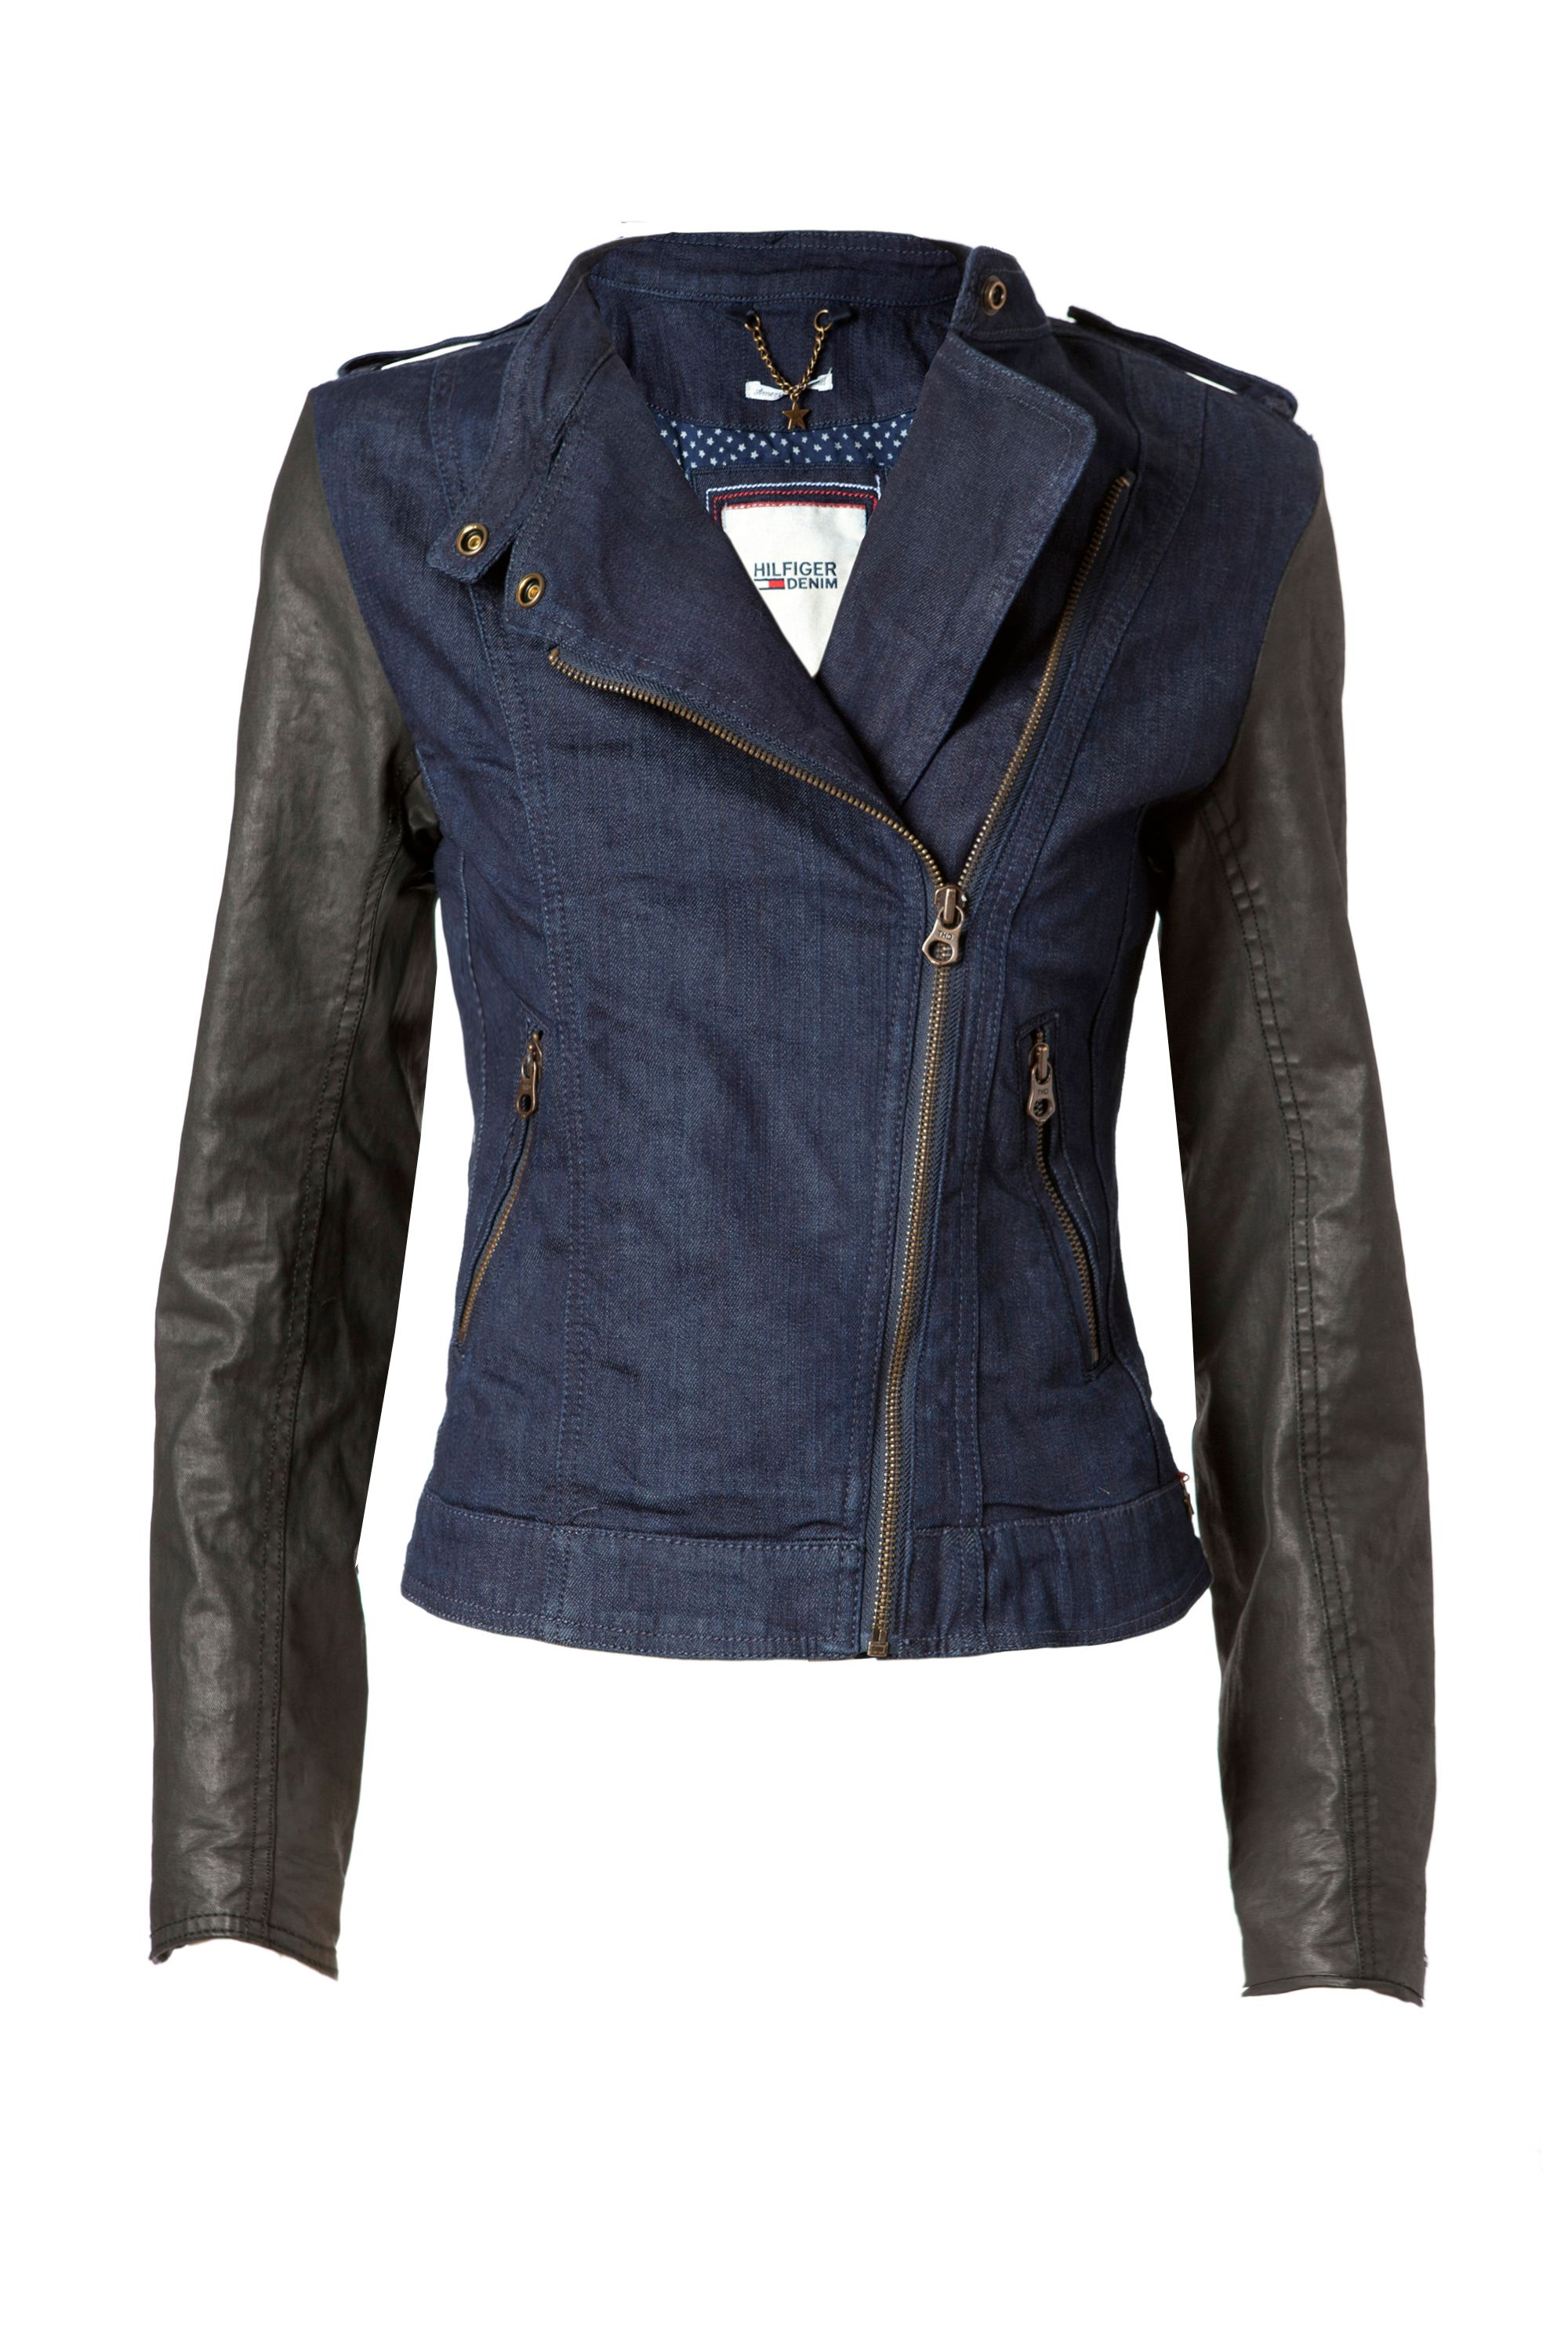 Elisabeth  denim jacket